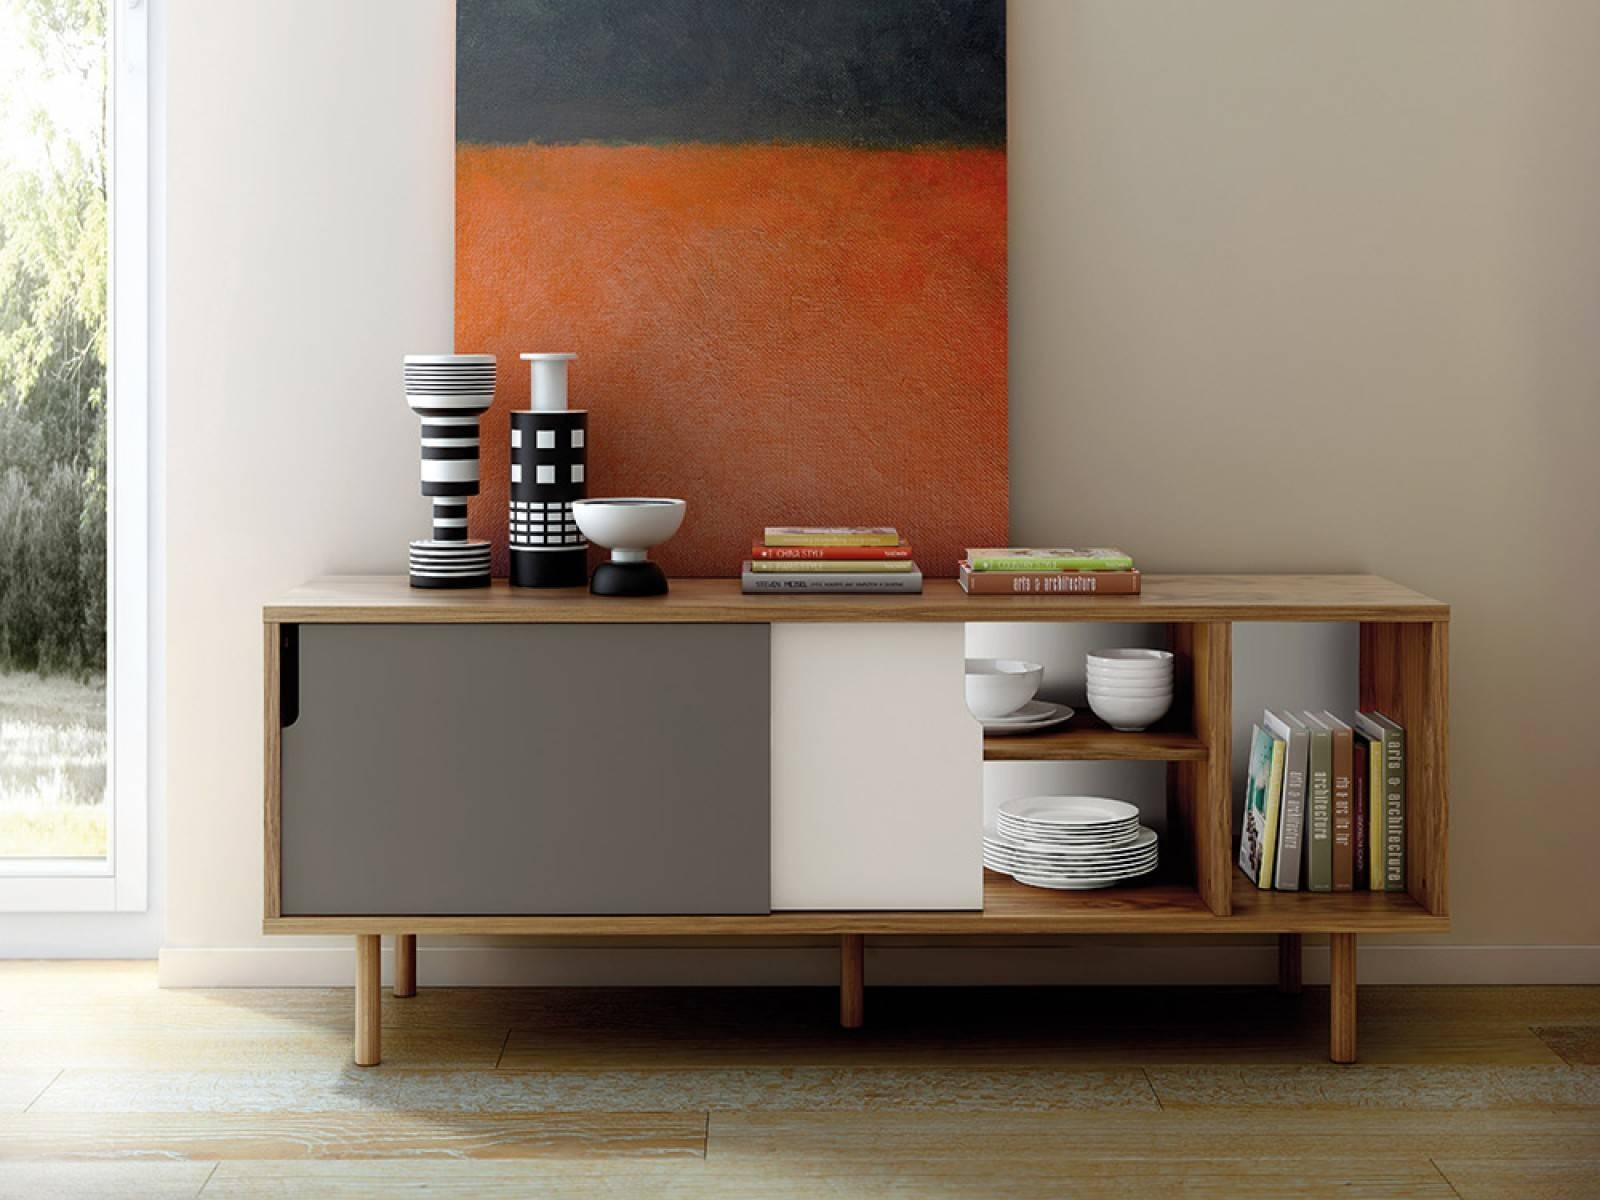 Furniture: Beautiful Profile Modern Sideboard For Living Room inside Modern Living Room Sideboards (Image 14 of 30)